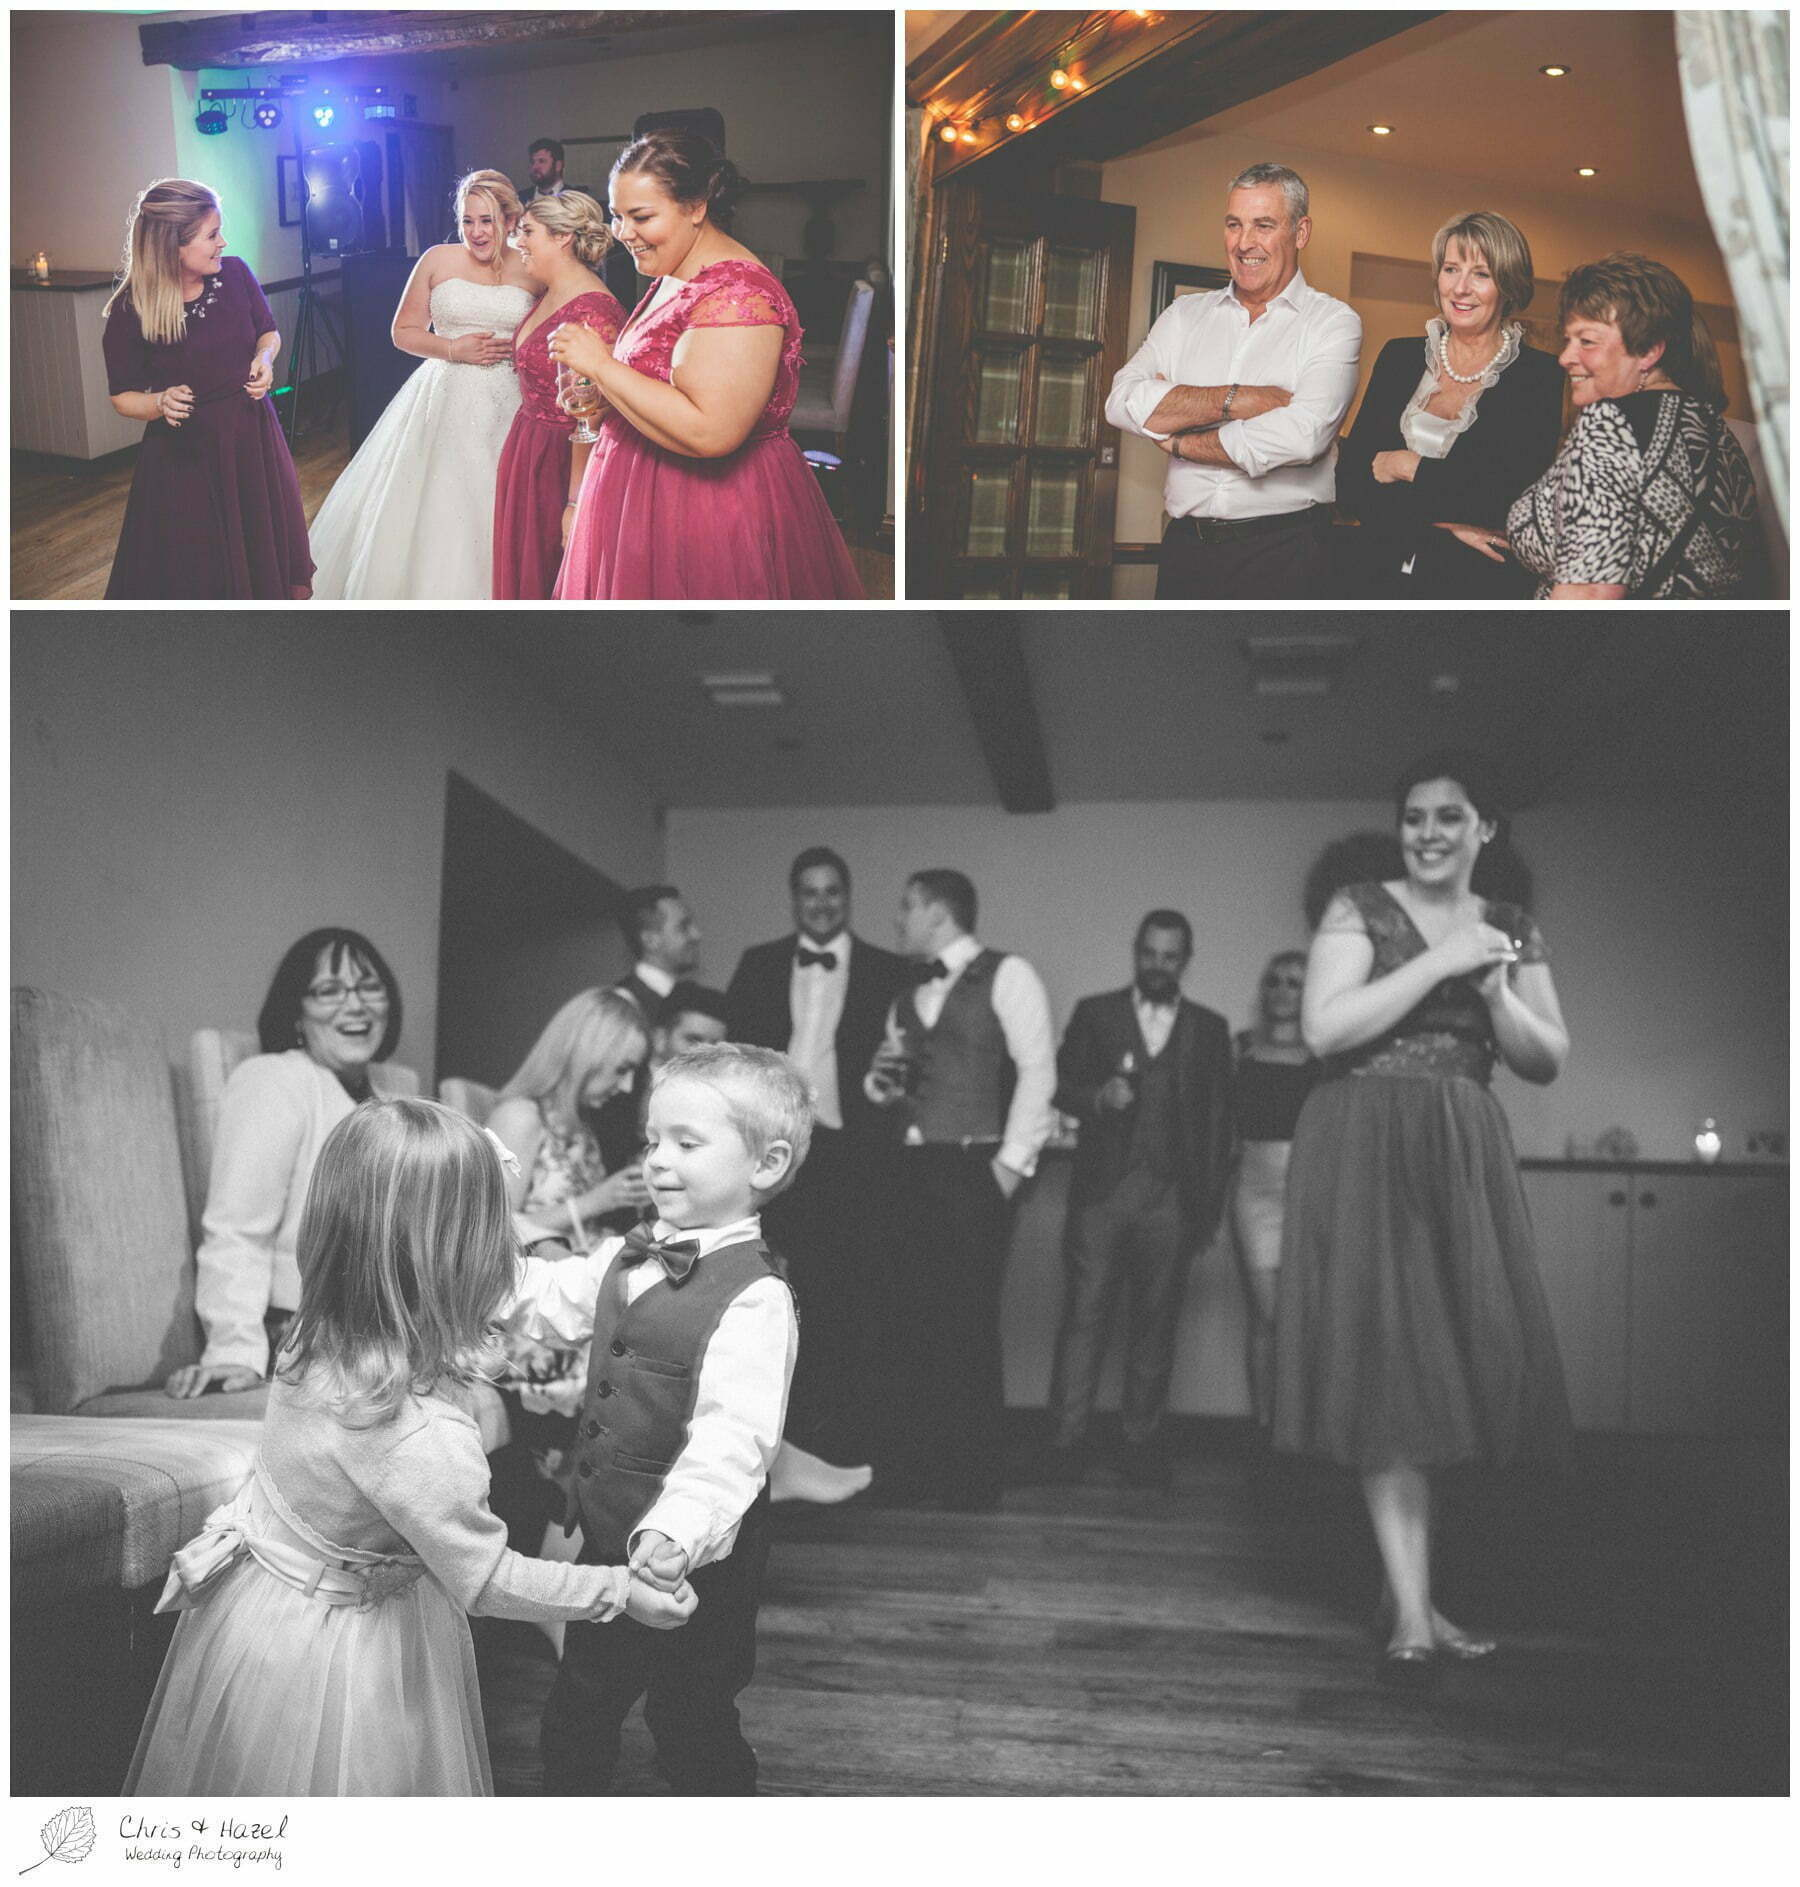 documentary wedding photography wedding reception the woodman inn wedding photography kirkburton by chris and hazel wedding photography Patrick Hetherington Lauren dean birkenshaw